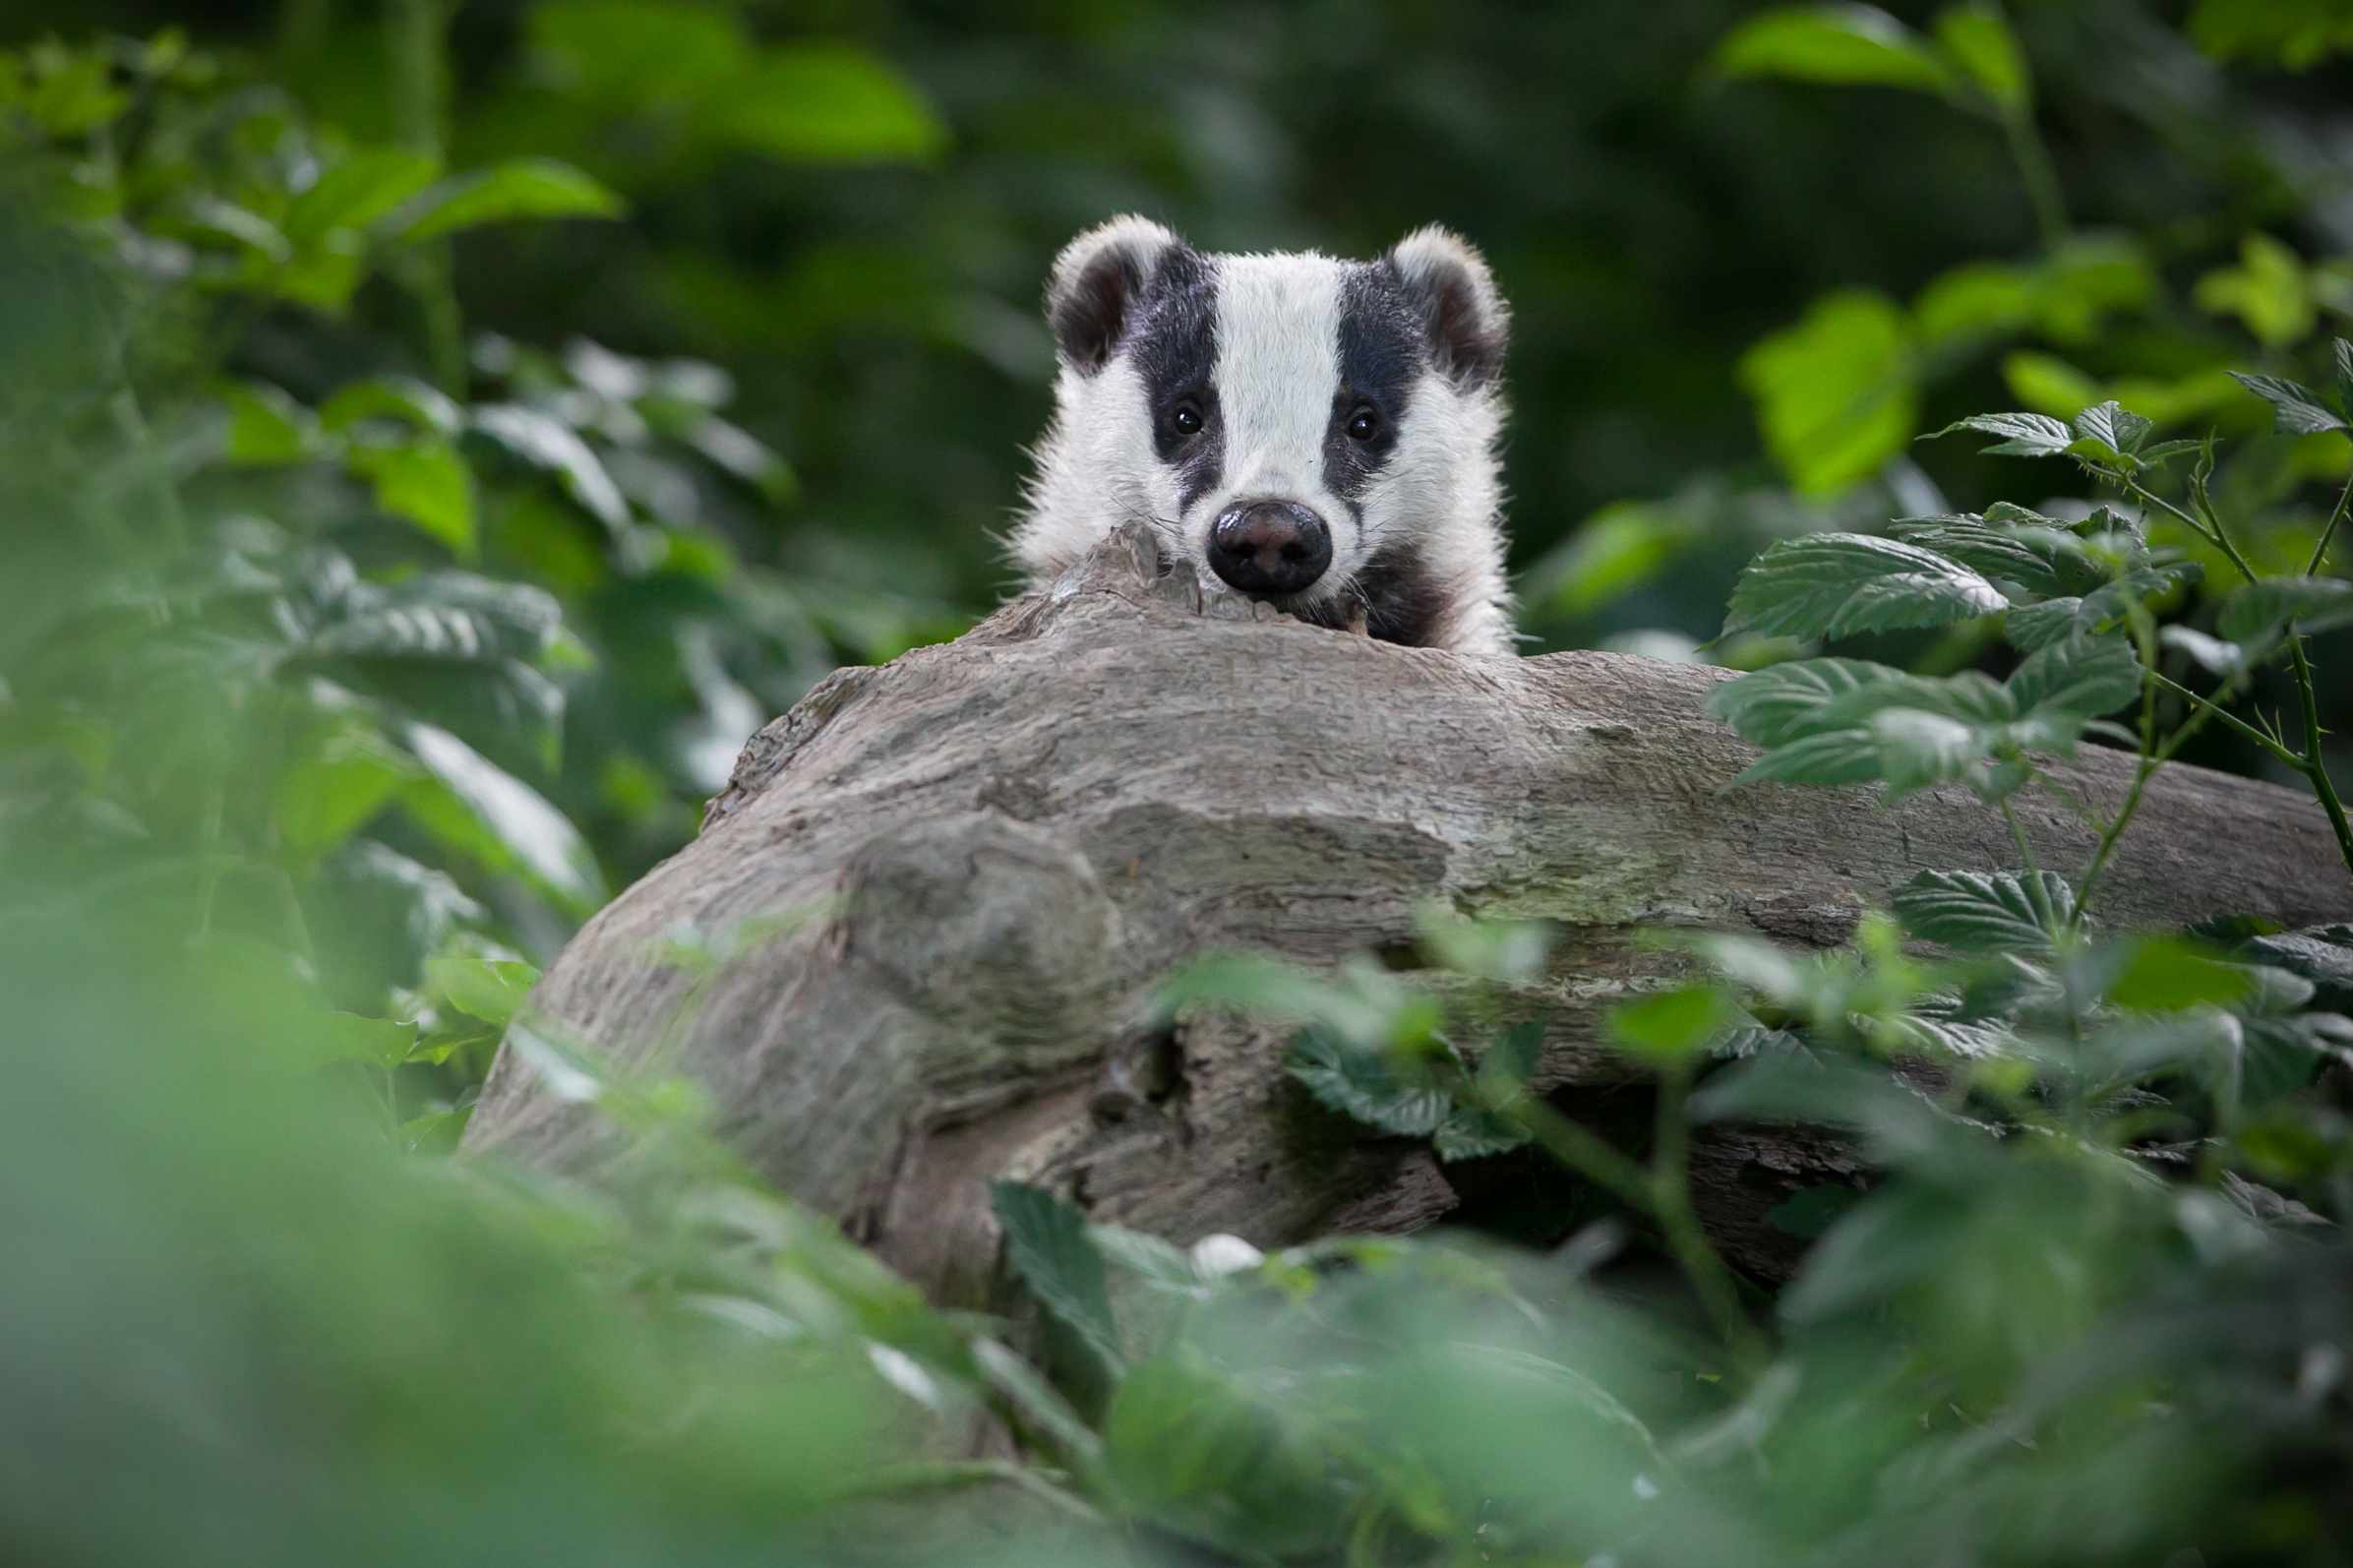 European badger, Meles meles